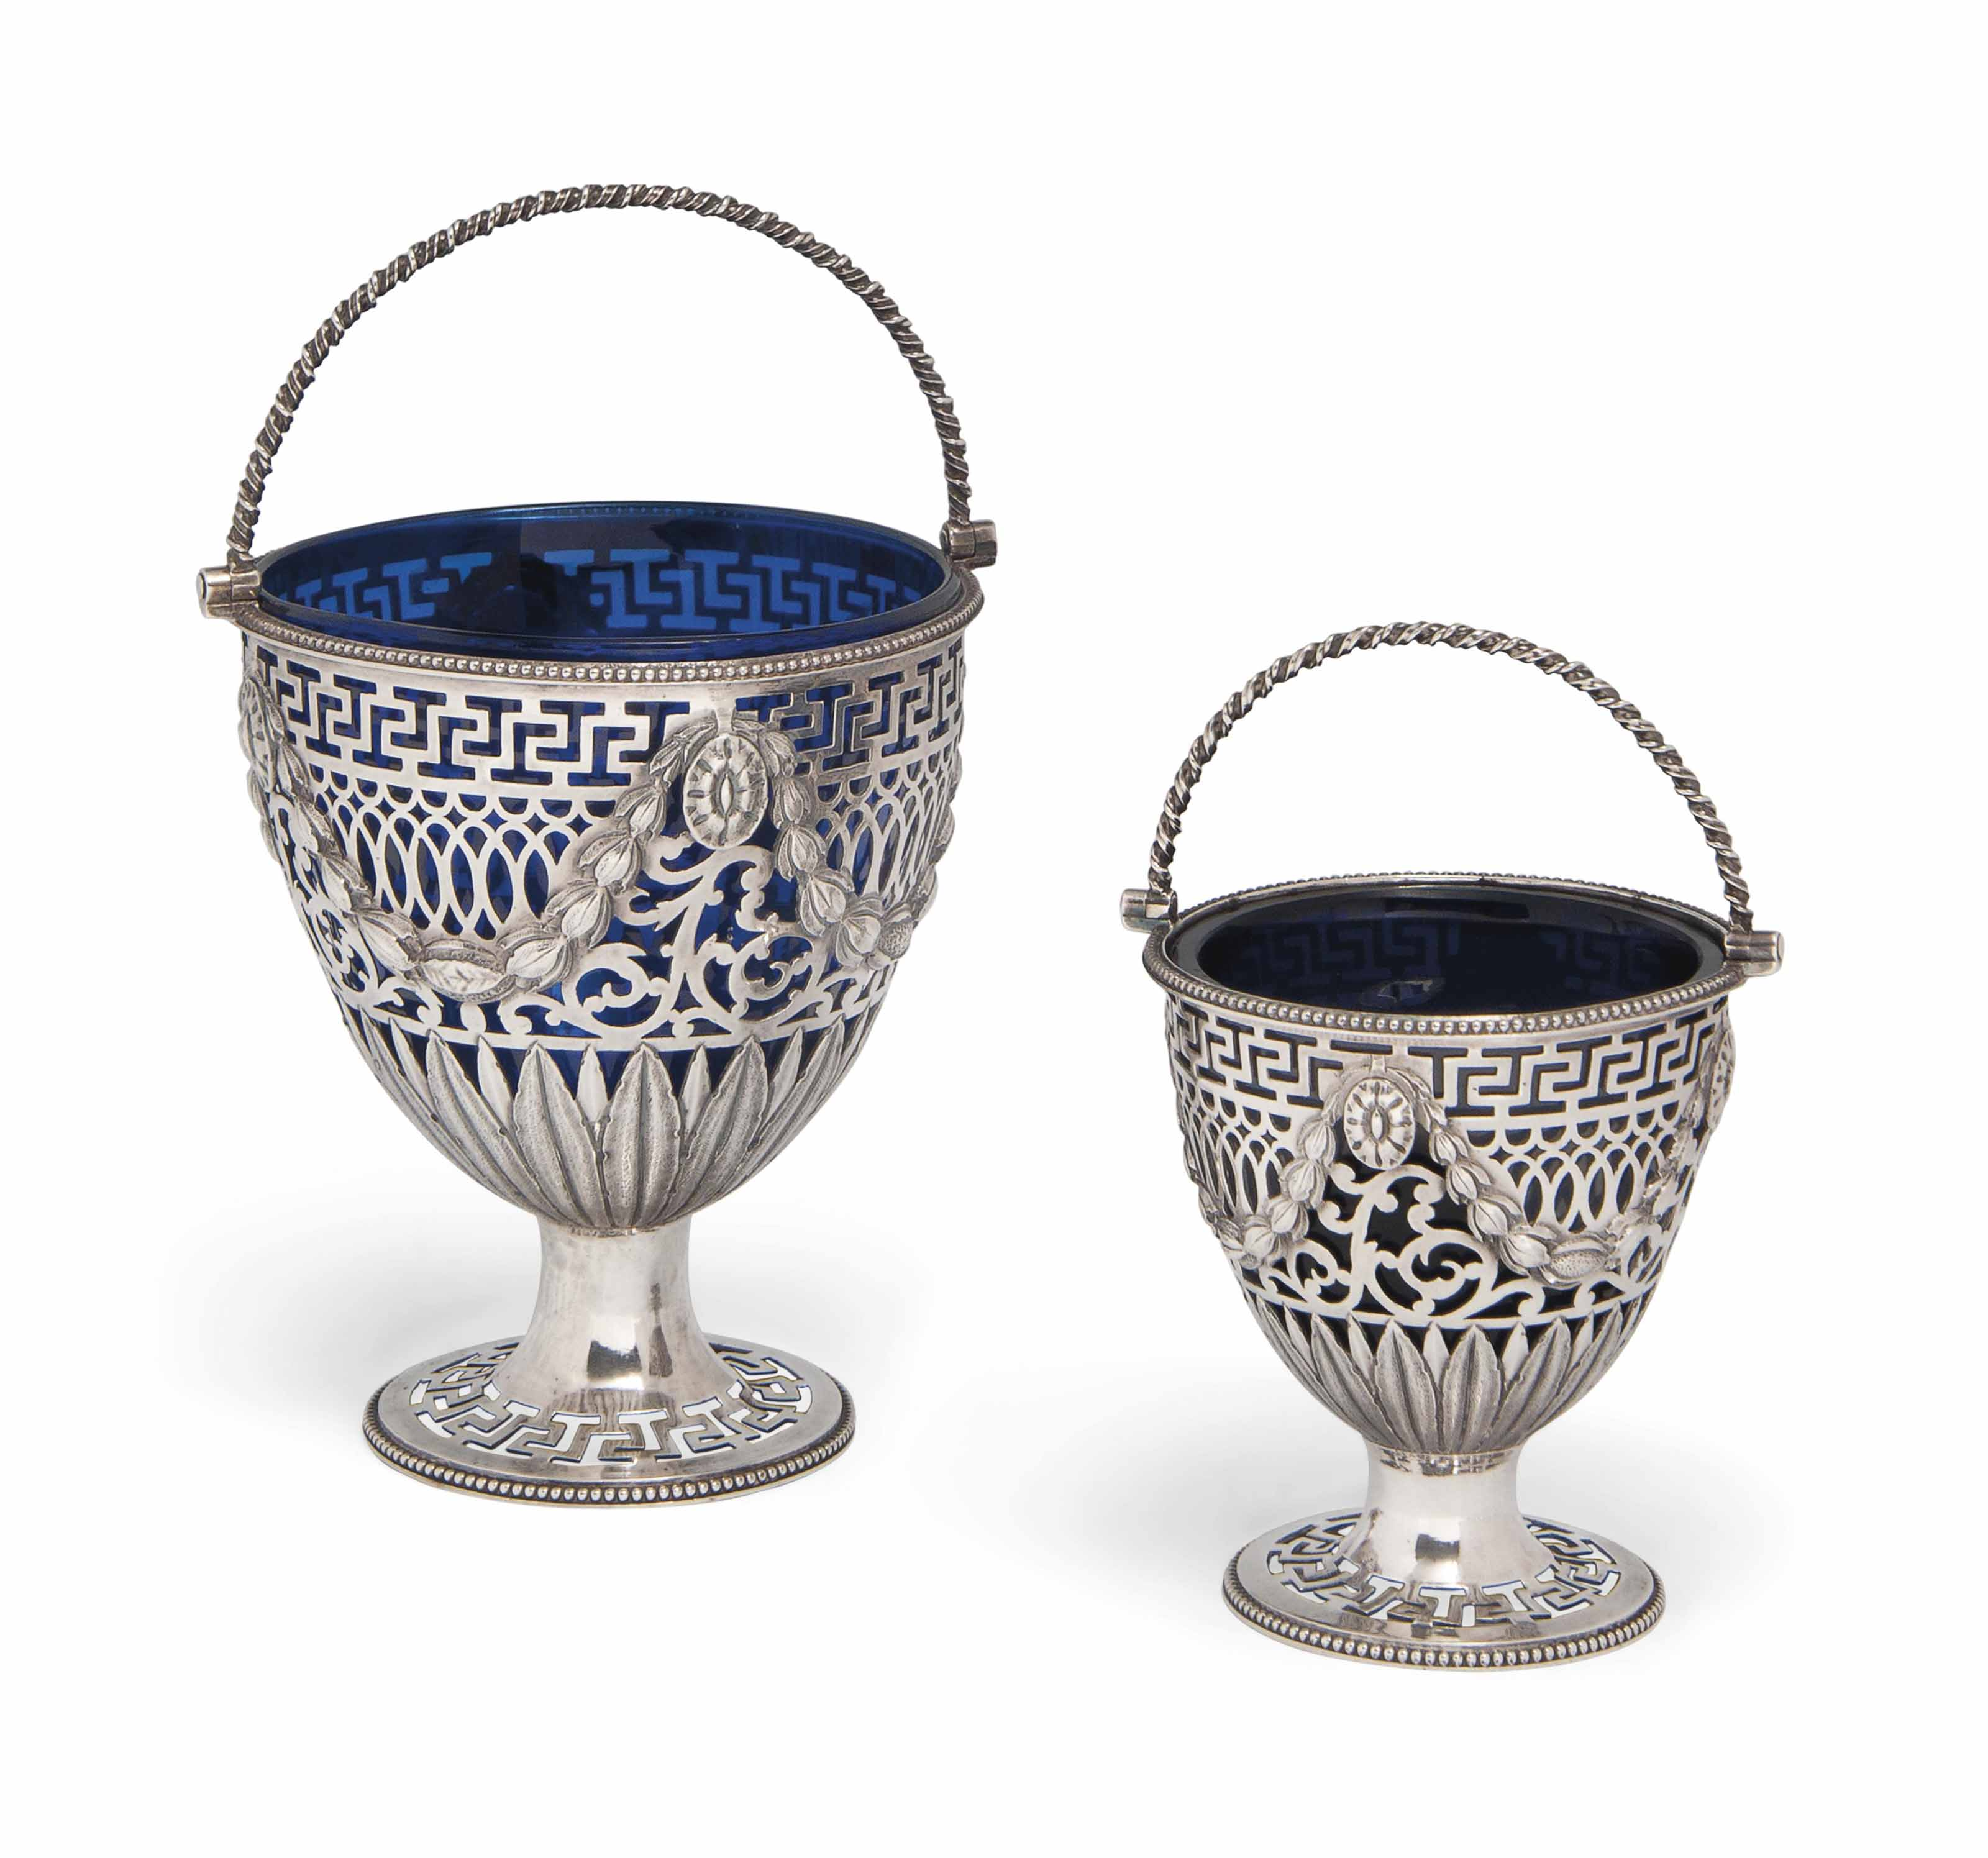 A MATCHED GRADUATED PAIR OF GEORGE III SILVER SWING-HANDLED SUGAR BASKETS